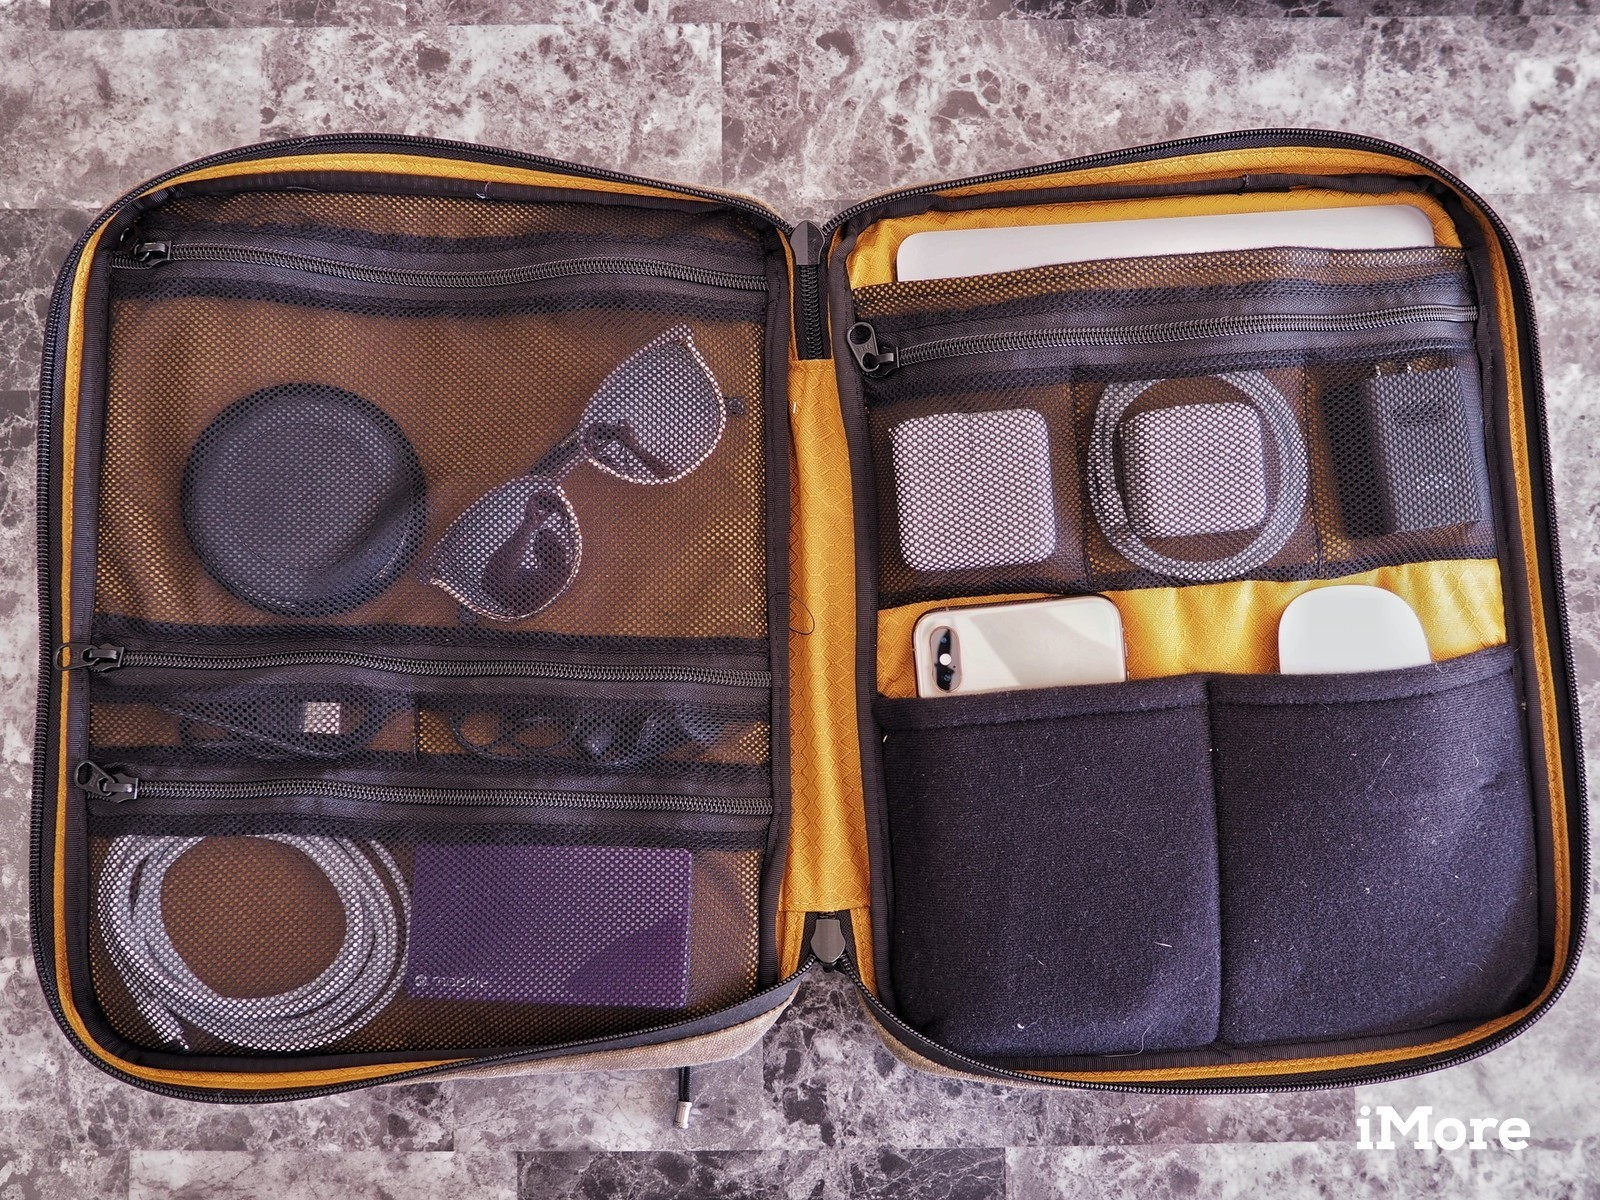 waterfield tech folio plus review leave accessory behind imore accent tablet right off the bat first thing you likely notice just how beautiful looks and feels leather has this